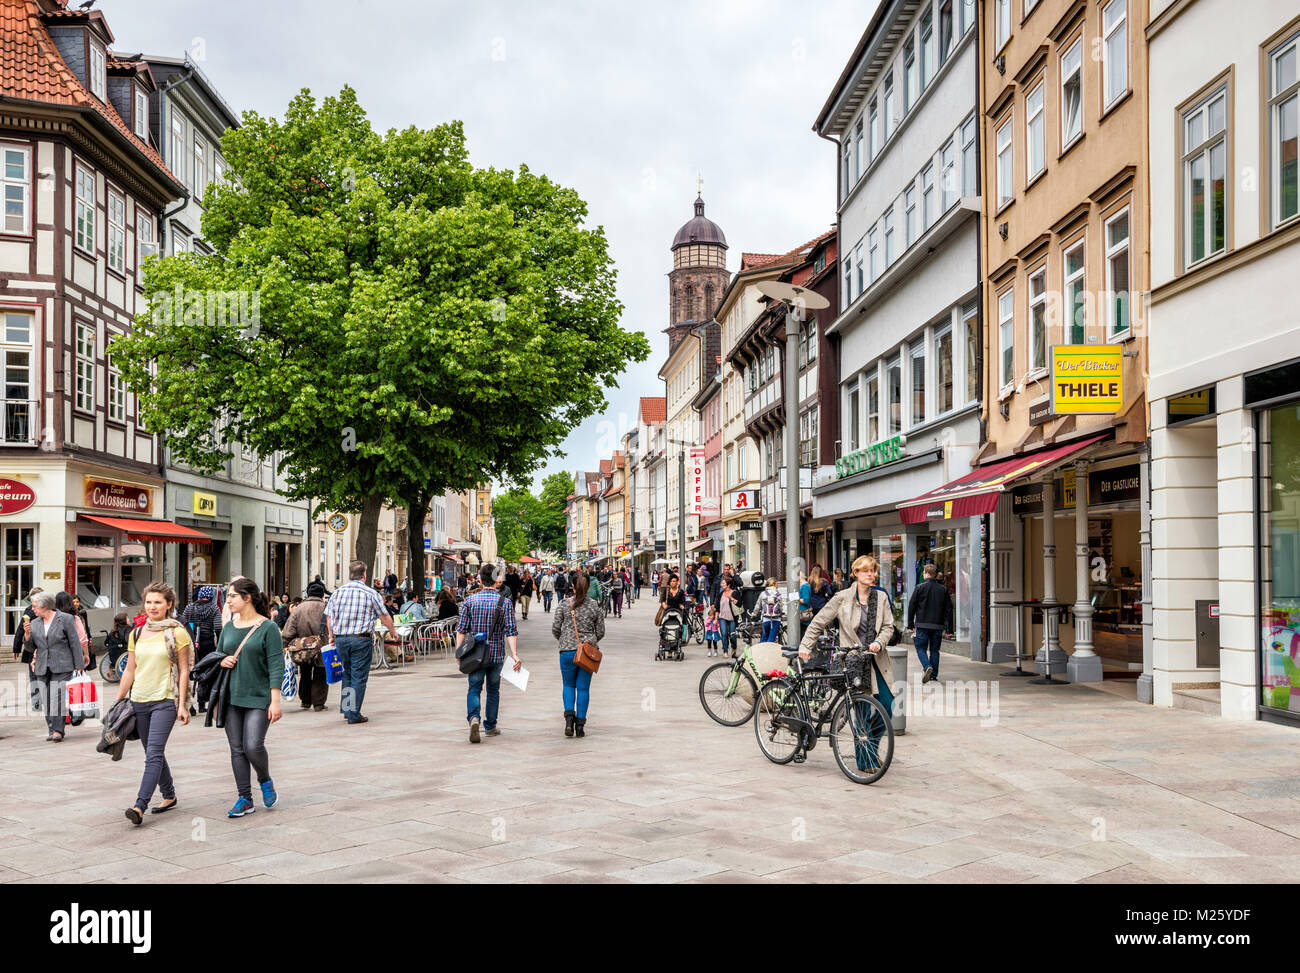 Weender Strasse pedestrian area in Old Town of Gottingen, Lower Saxony, Germany - Stock Image